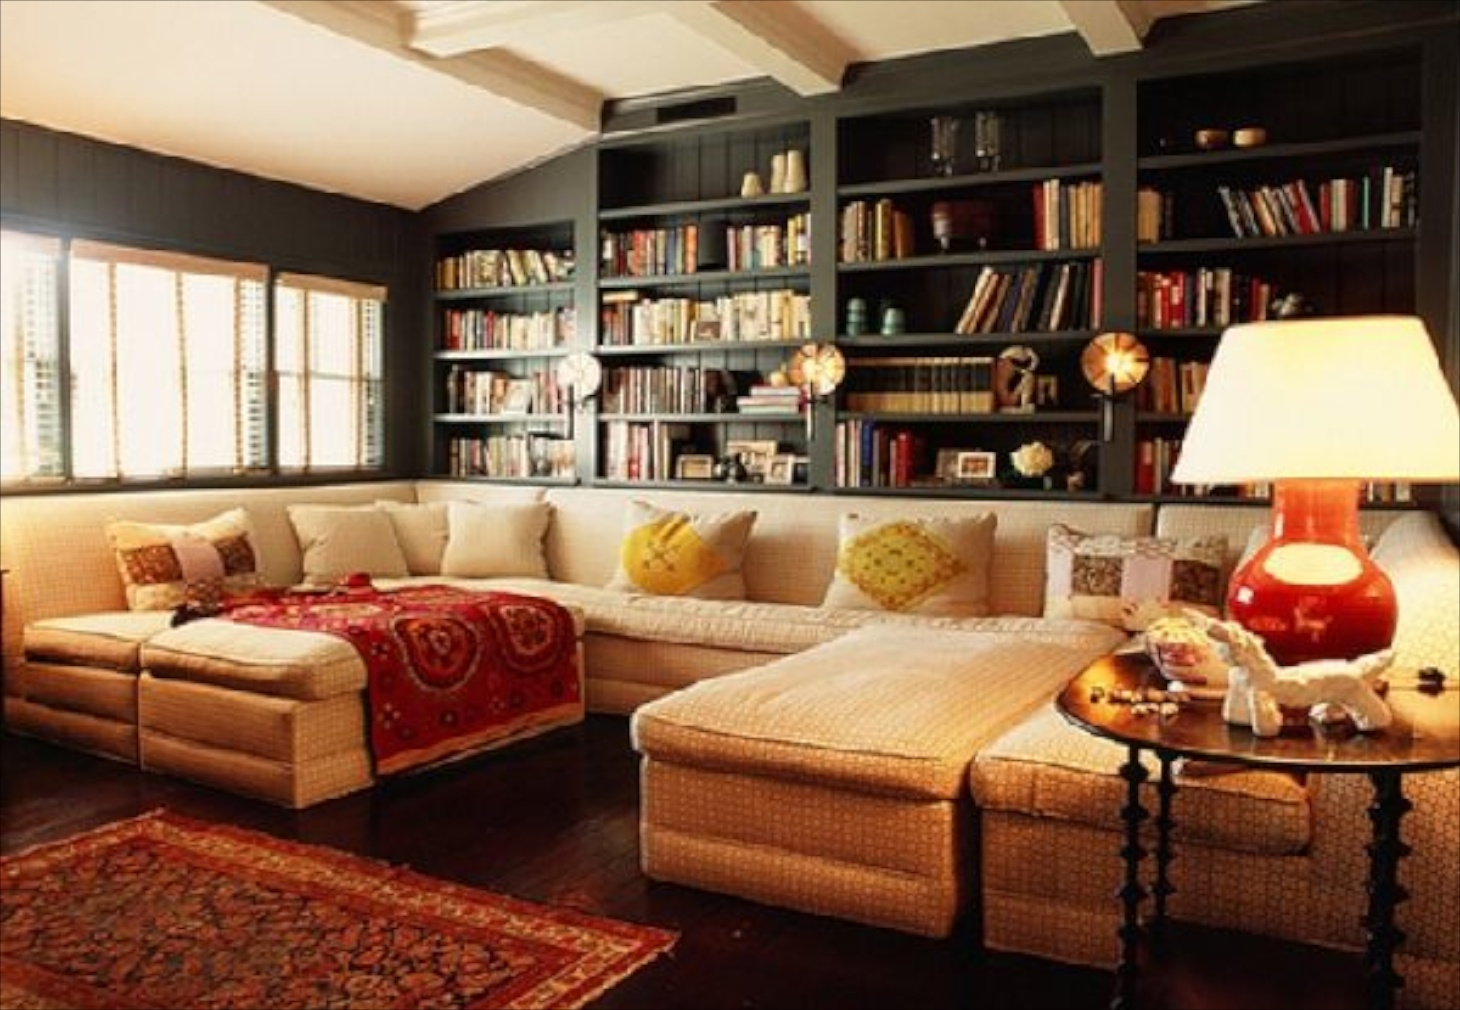 23 sofas and bookcase ideas in cozy living room design for Living decorating ideas pictures